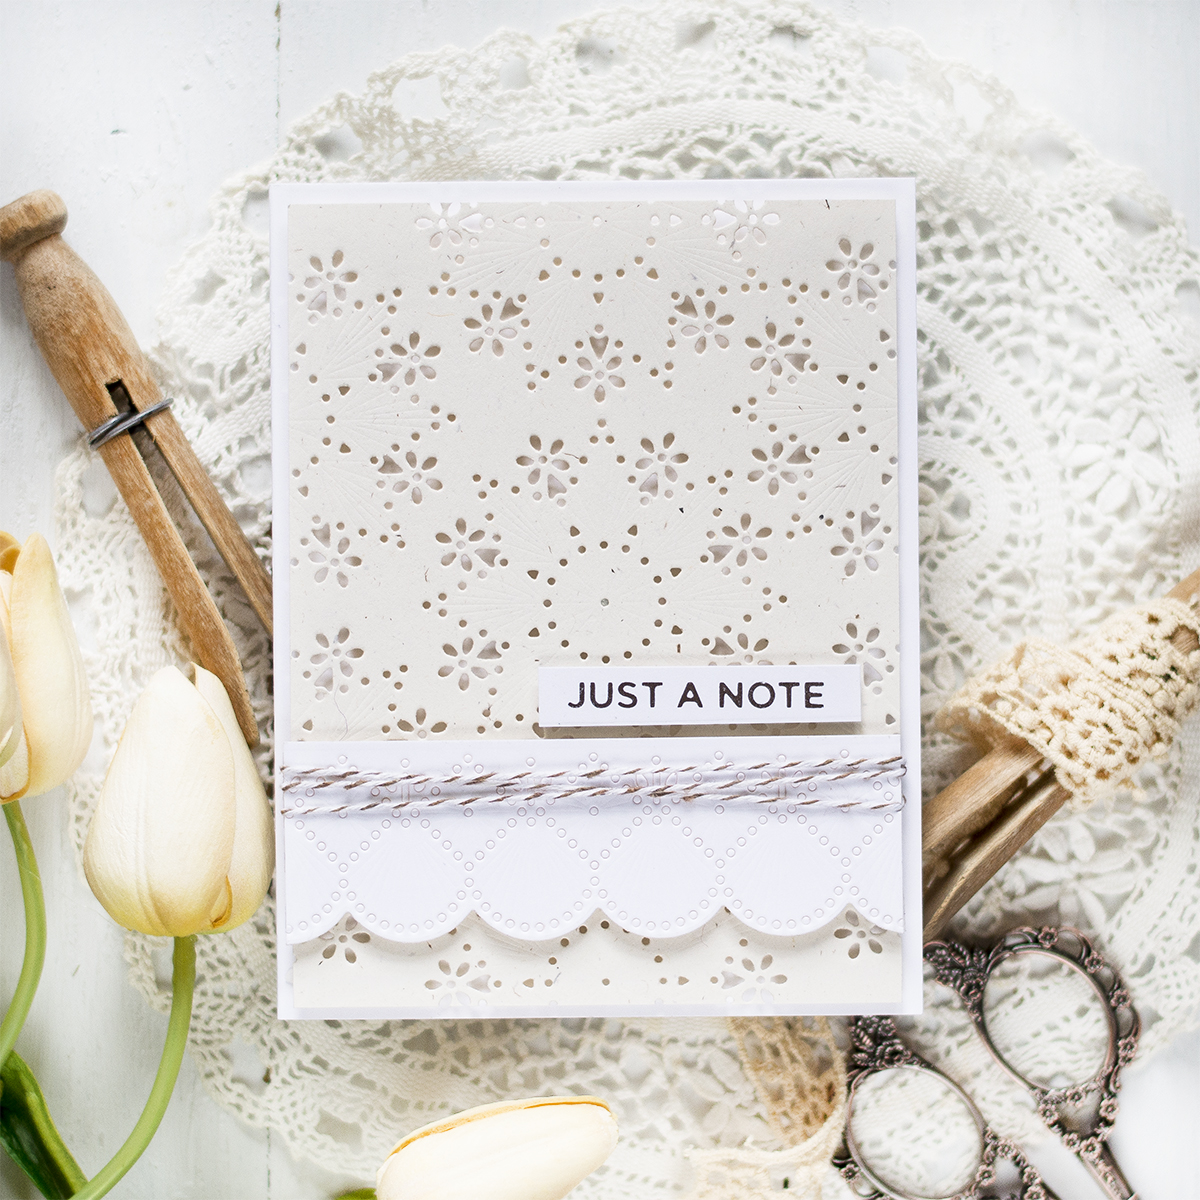 Using Holiday Dies for a Non Holiday Card. Card by Svitlana Shayevich